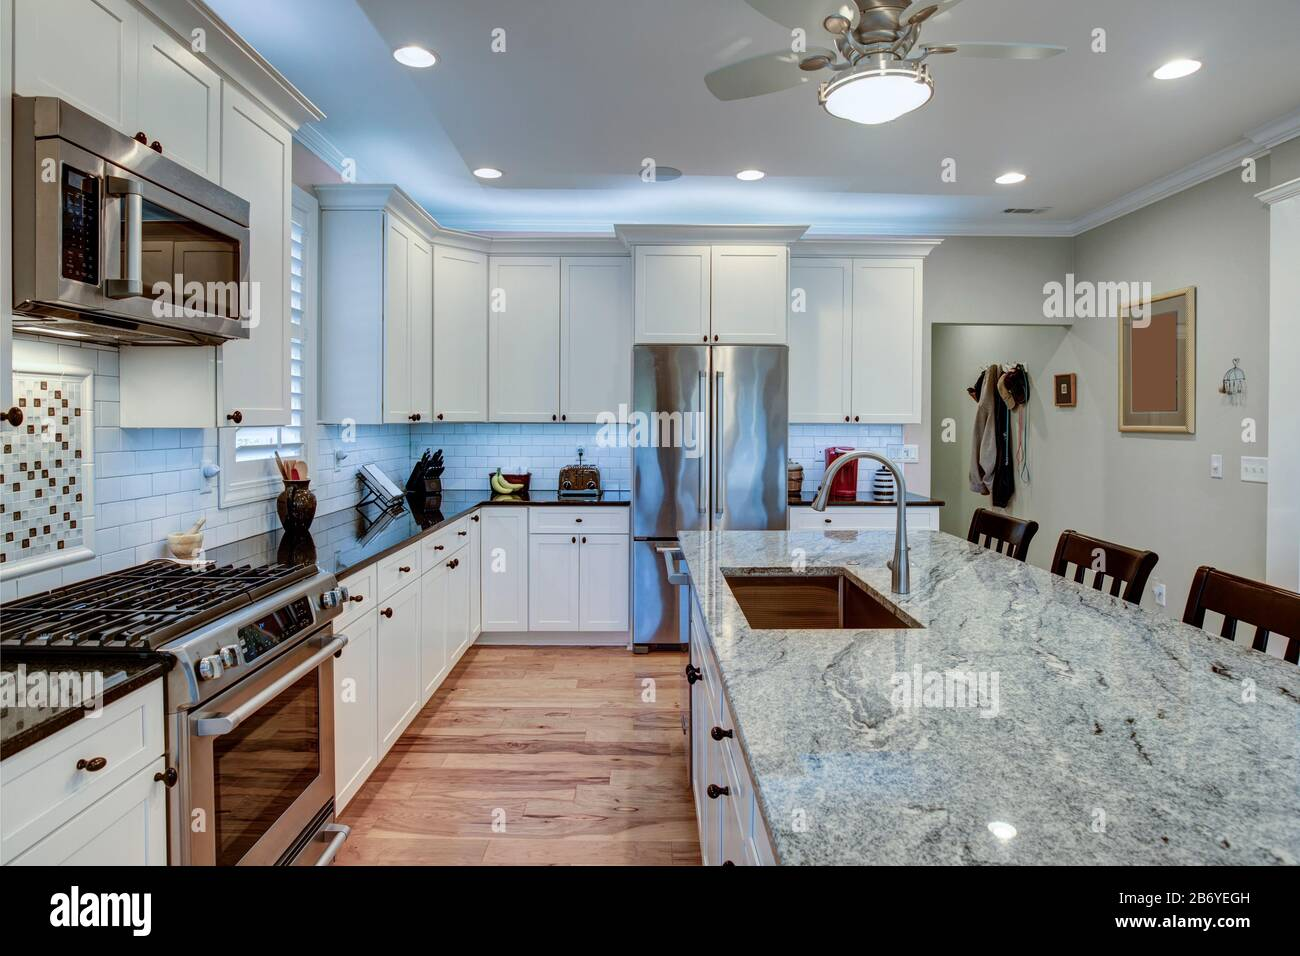 Beautiful Luxury Kitchen With Quartz And Granite Countertops And White Cabinets Stock Photo Alamy